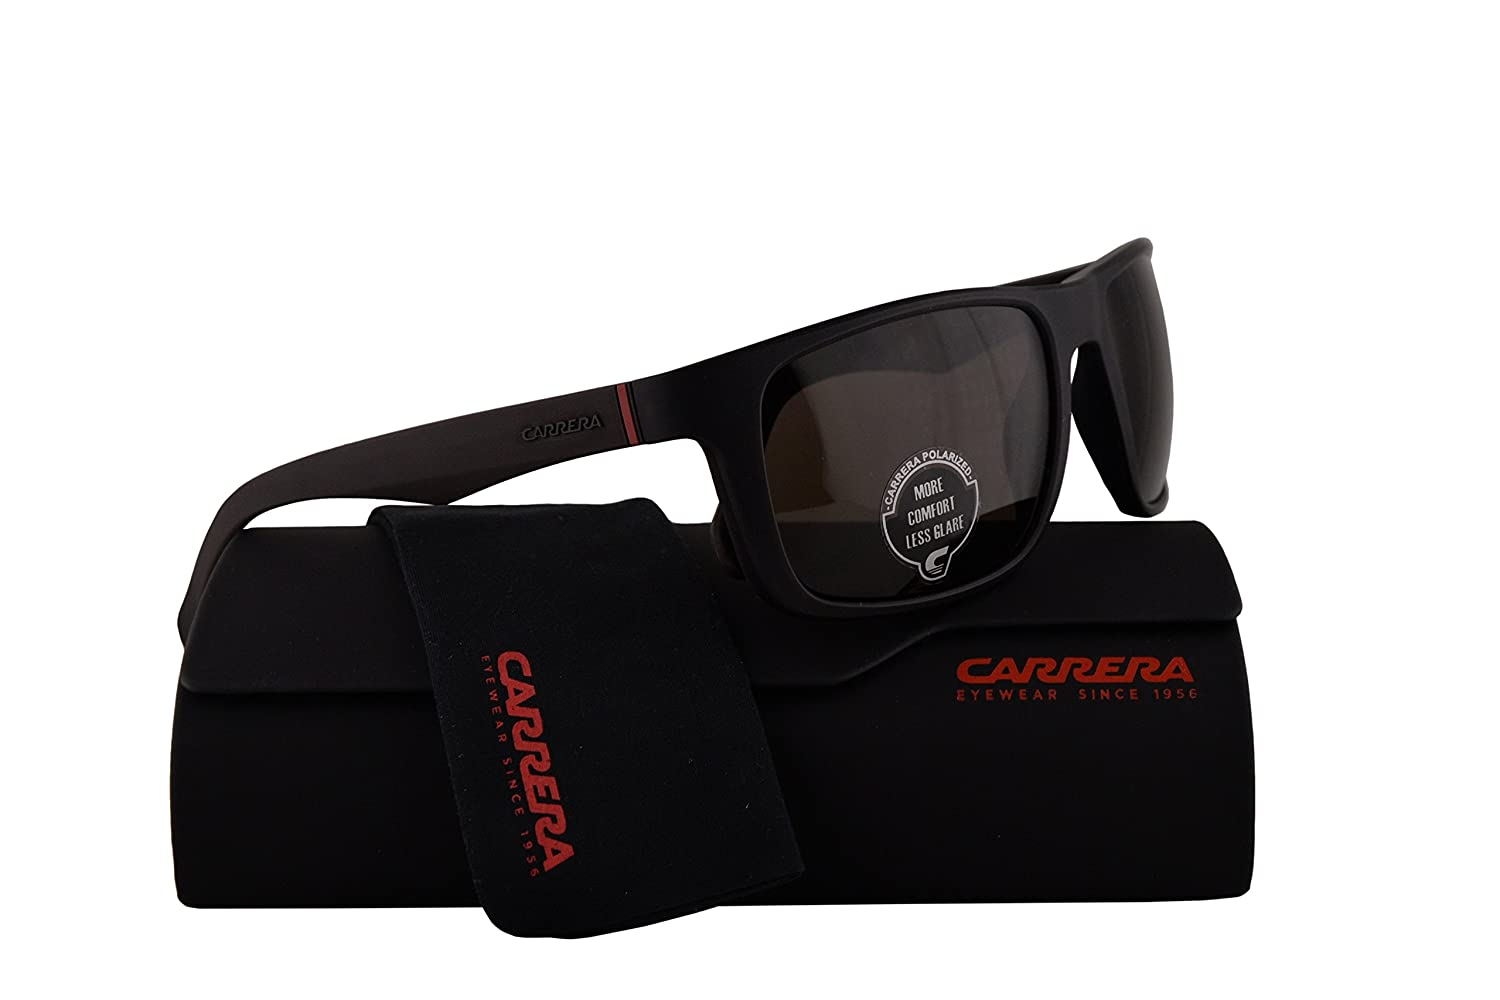 Amazon.com: Carrera 8027/S – anteojos de sol color café w ...